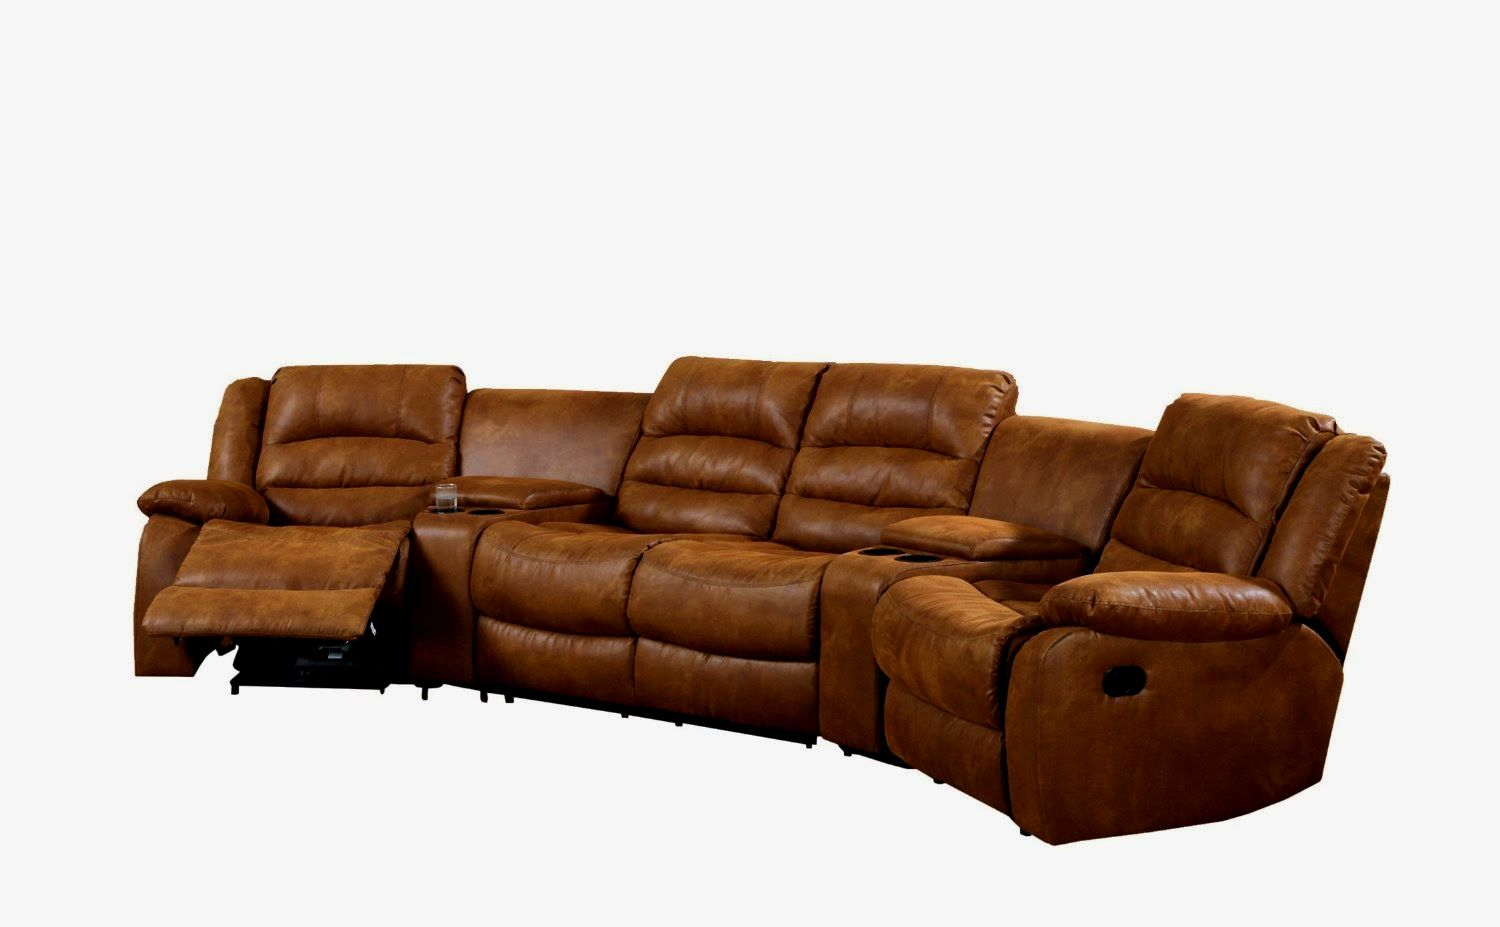 Designer Leather Sofas For Sale Terrific Leather Sofa Sale Décor Modern Sofa Design